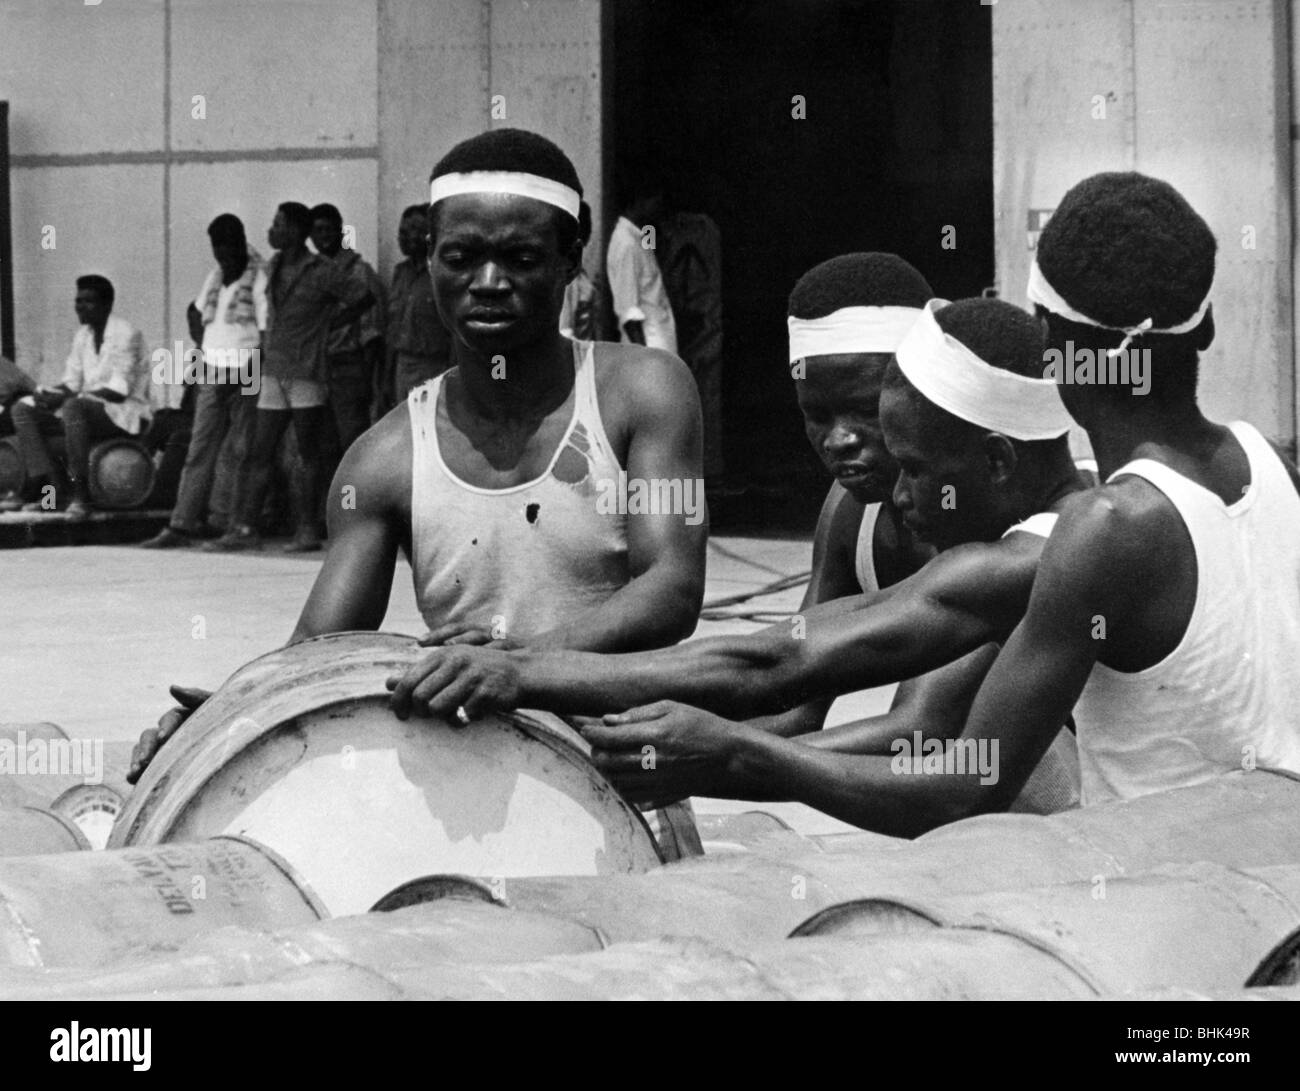 geography / travel, Congo, events, Simba uprising 1964 - 1965, supply of petrol for the mercenaries, Stanleyville, - Stock Image